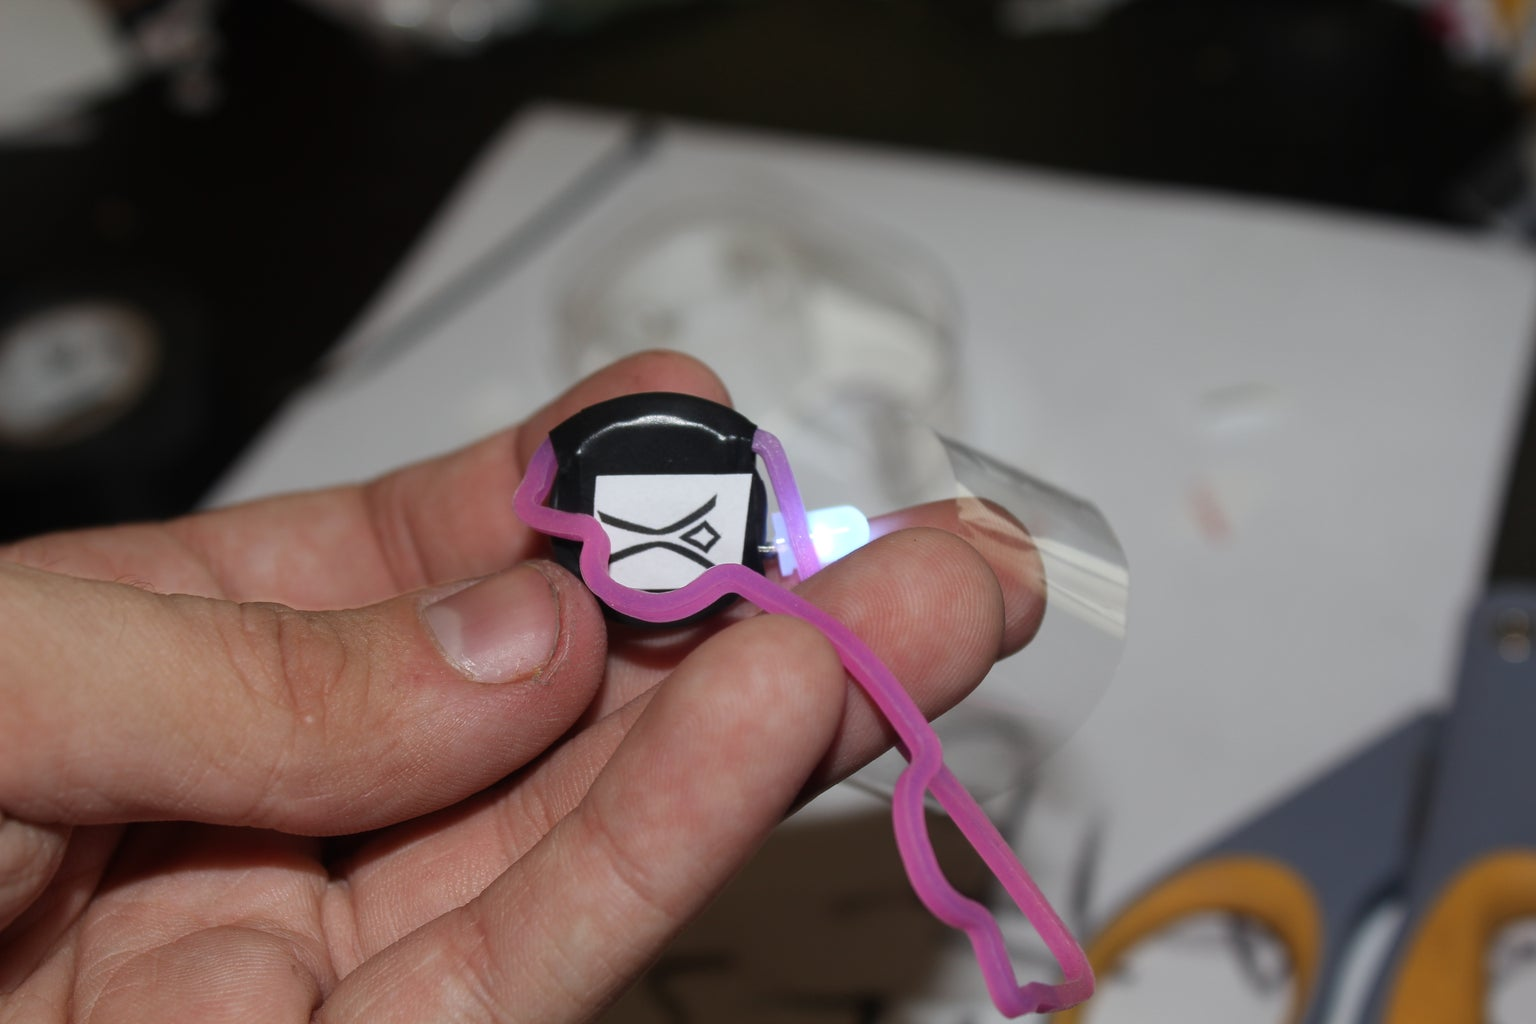 Attaching Shapey Band/Stickers